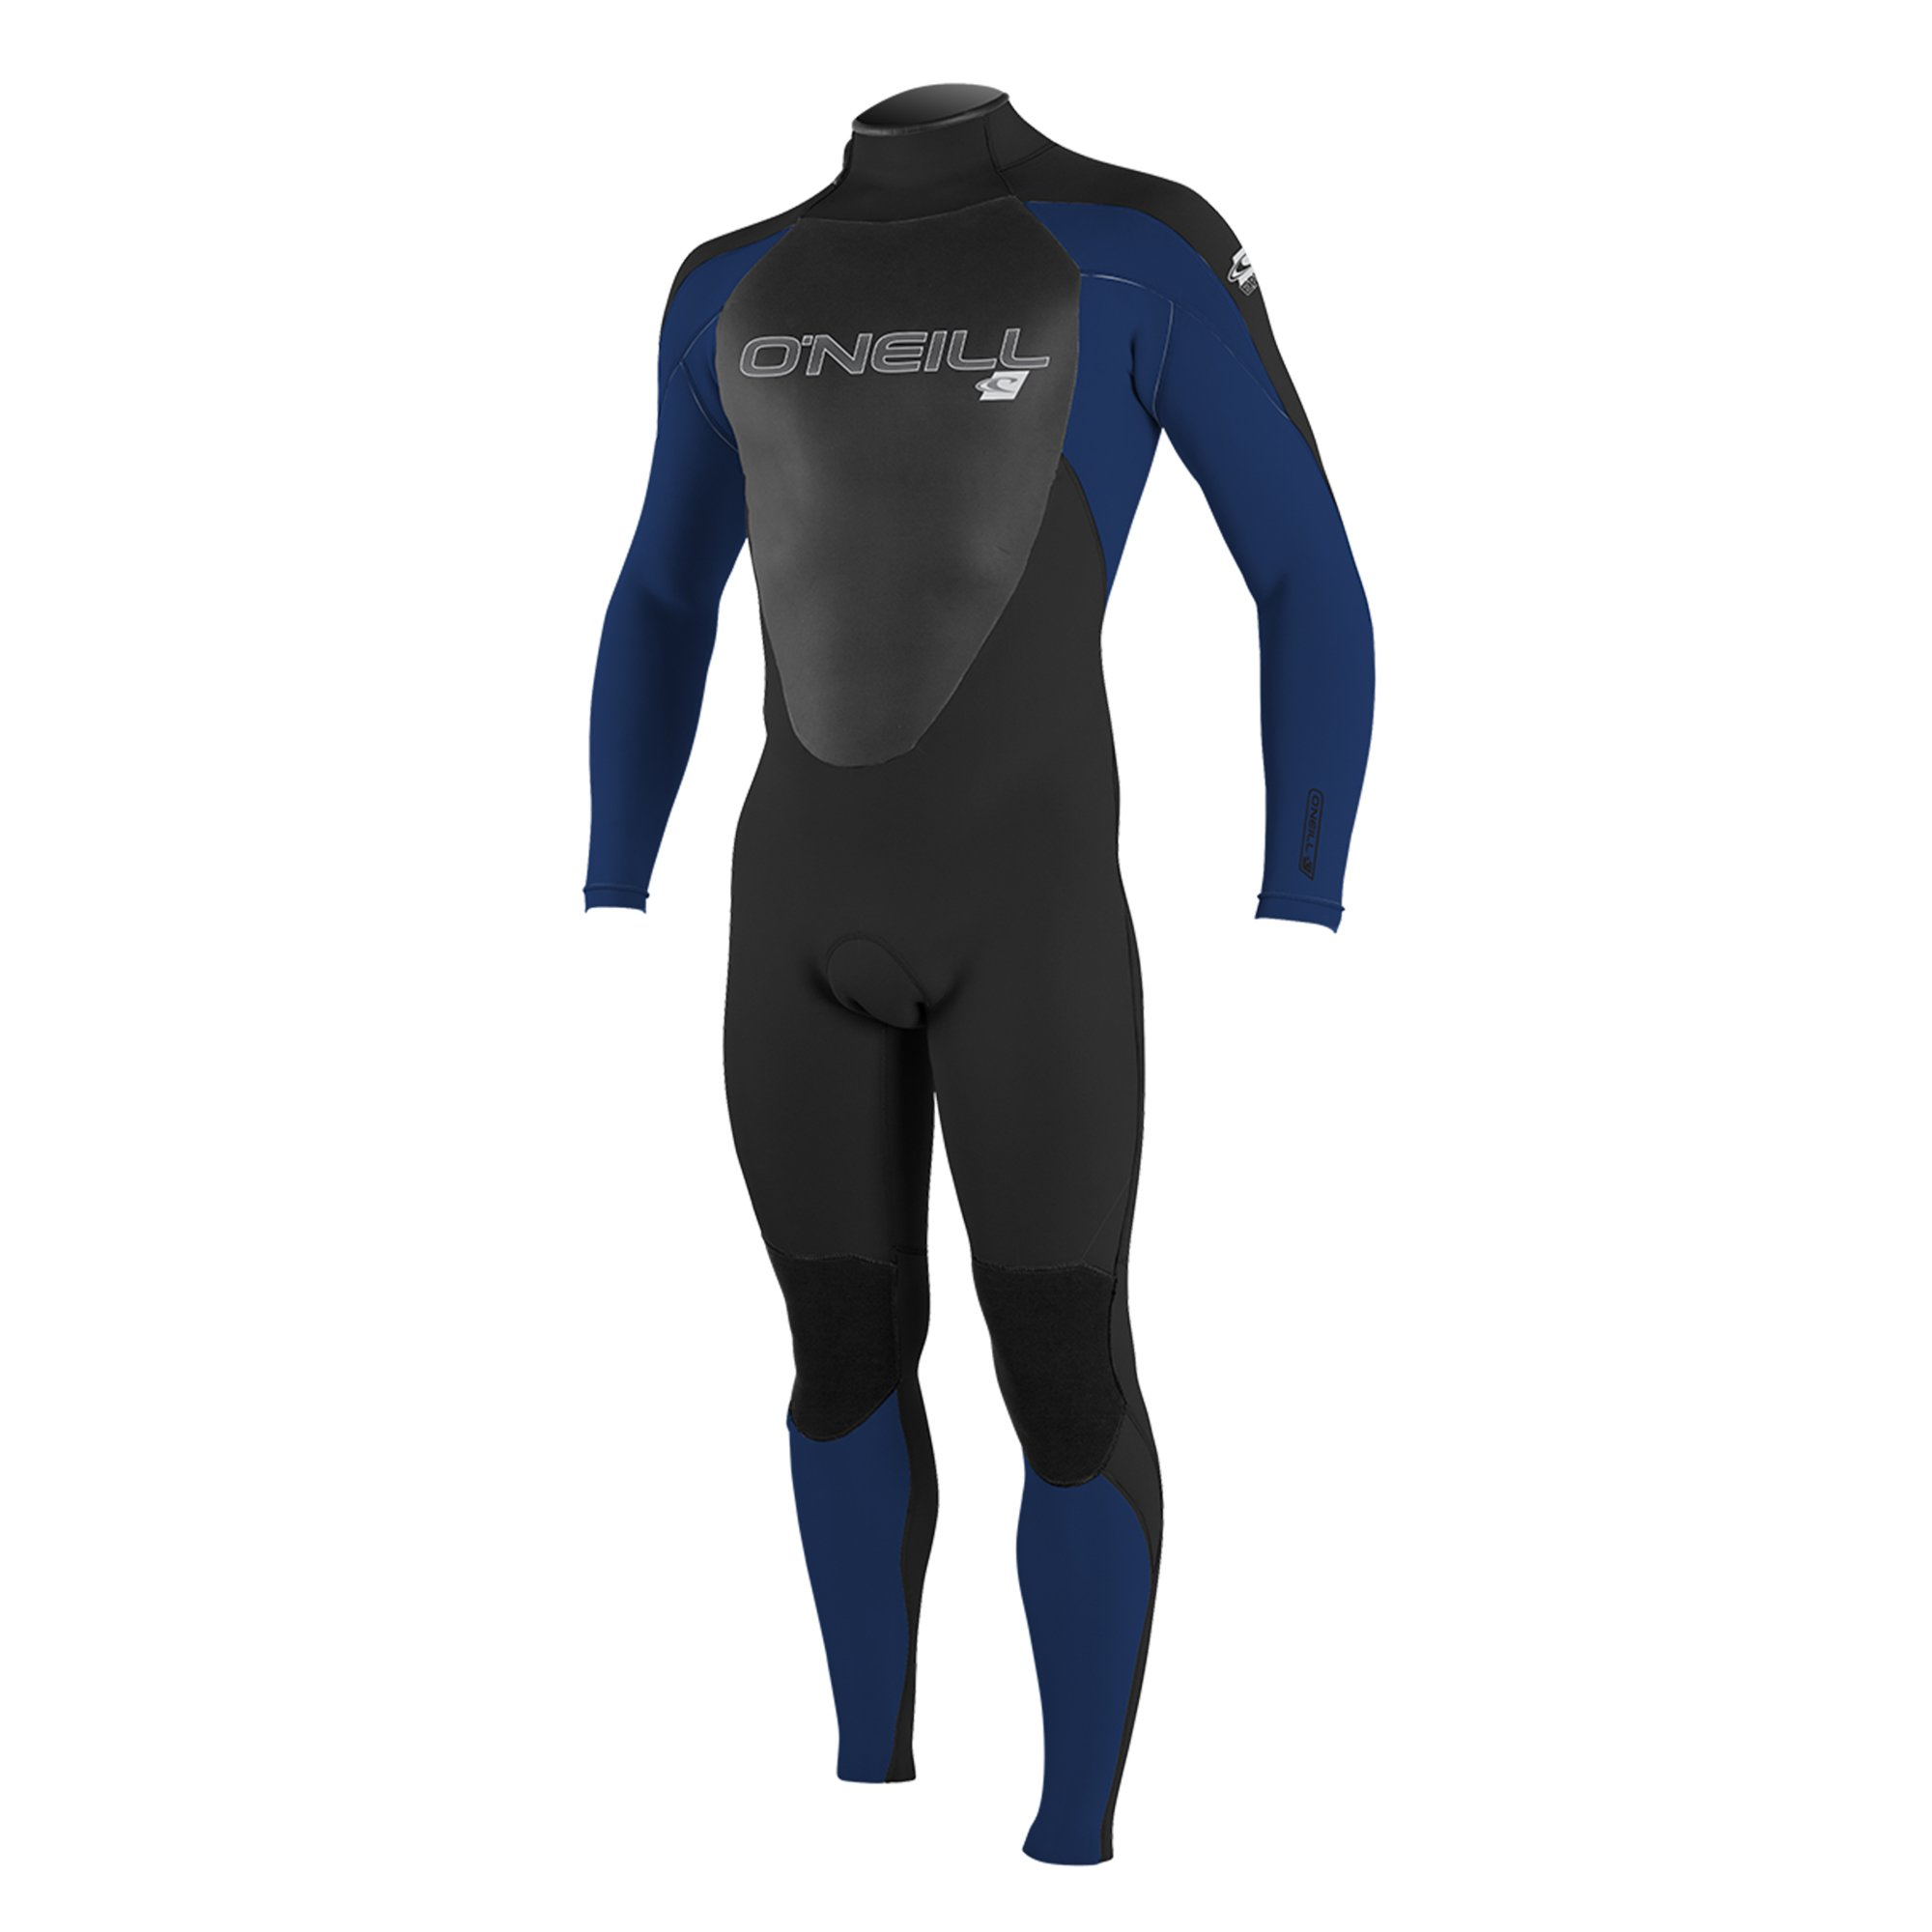 O'Neill Men's Epic 4/3mm Back Zip Full Wetsuit, Black/Navy/Black, Small by O'Neill Wetsuits (Image #1)